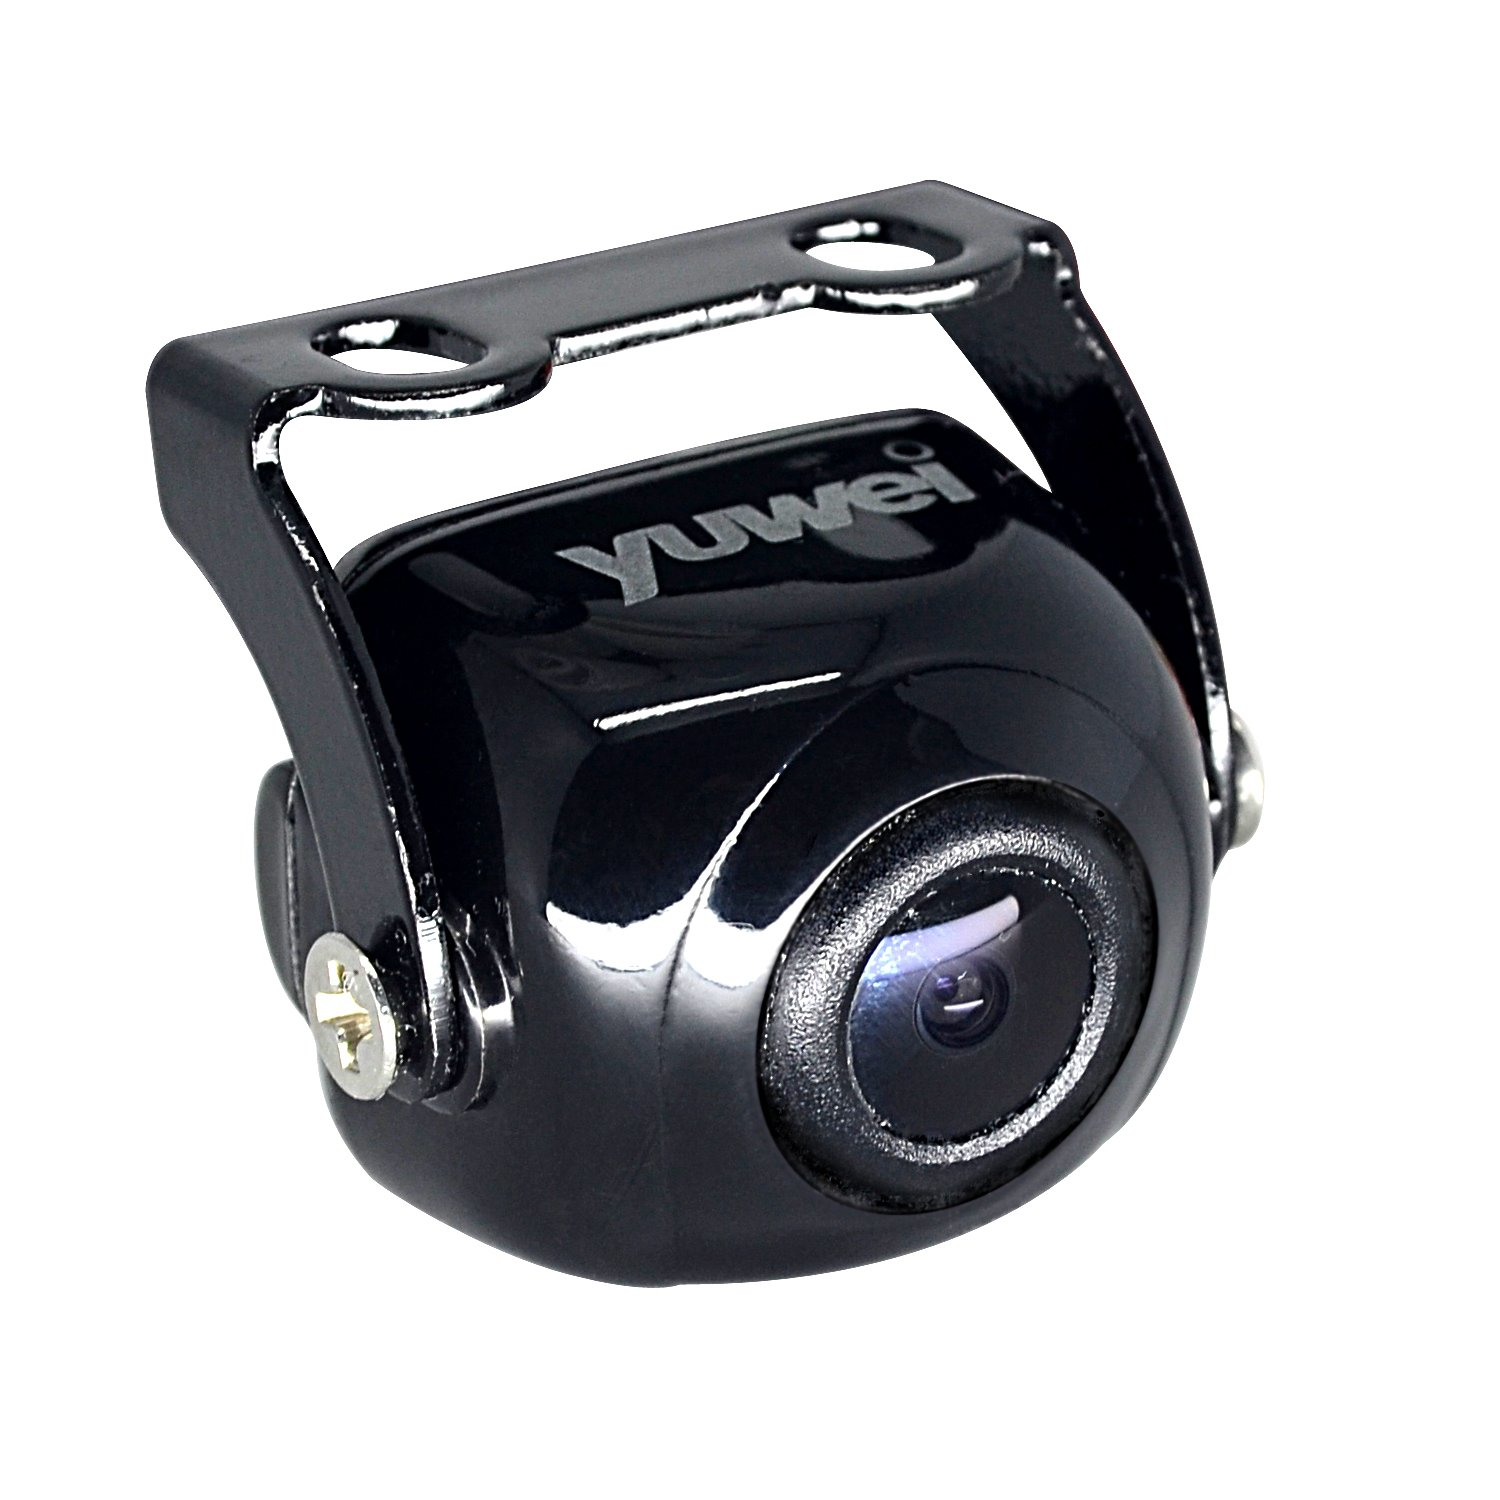 yuwei Backup Camera with 170 Degree Wide Viewing Angle High Definition and Waterproof IP68 Guangzhou Forsafe Electronics Technology Co Ltd 4350452014